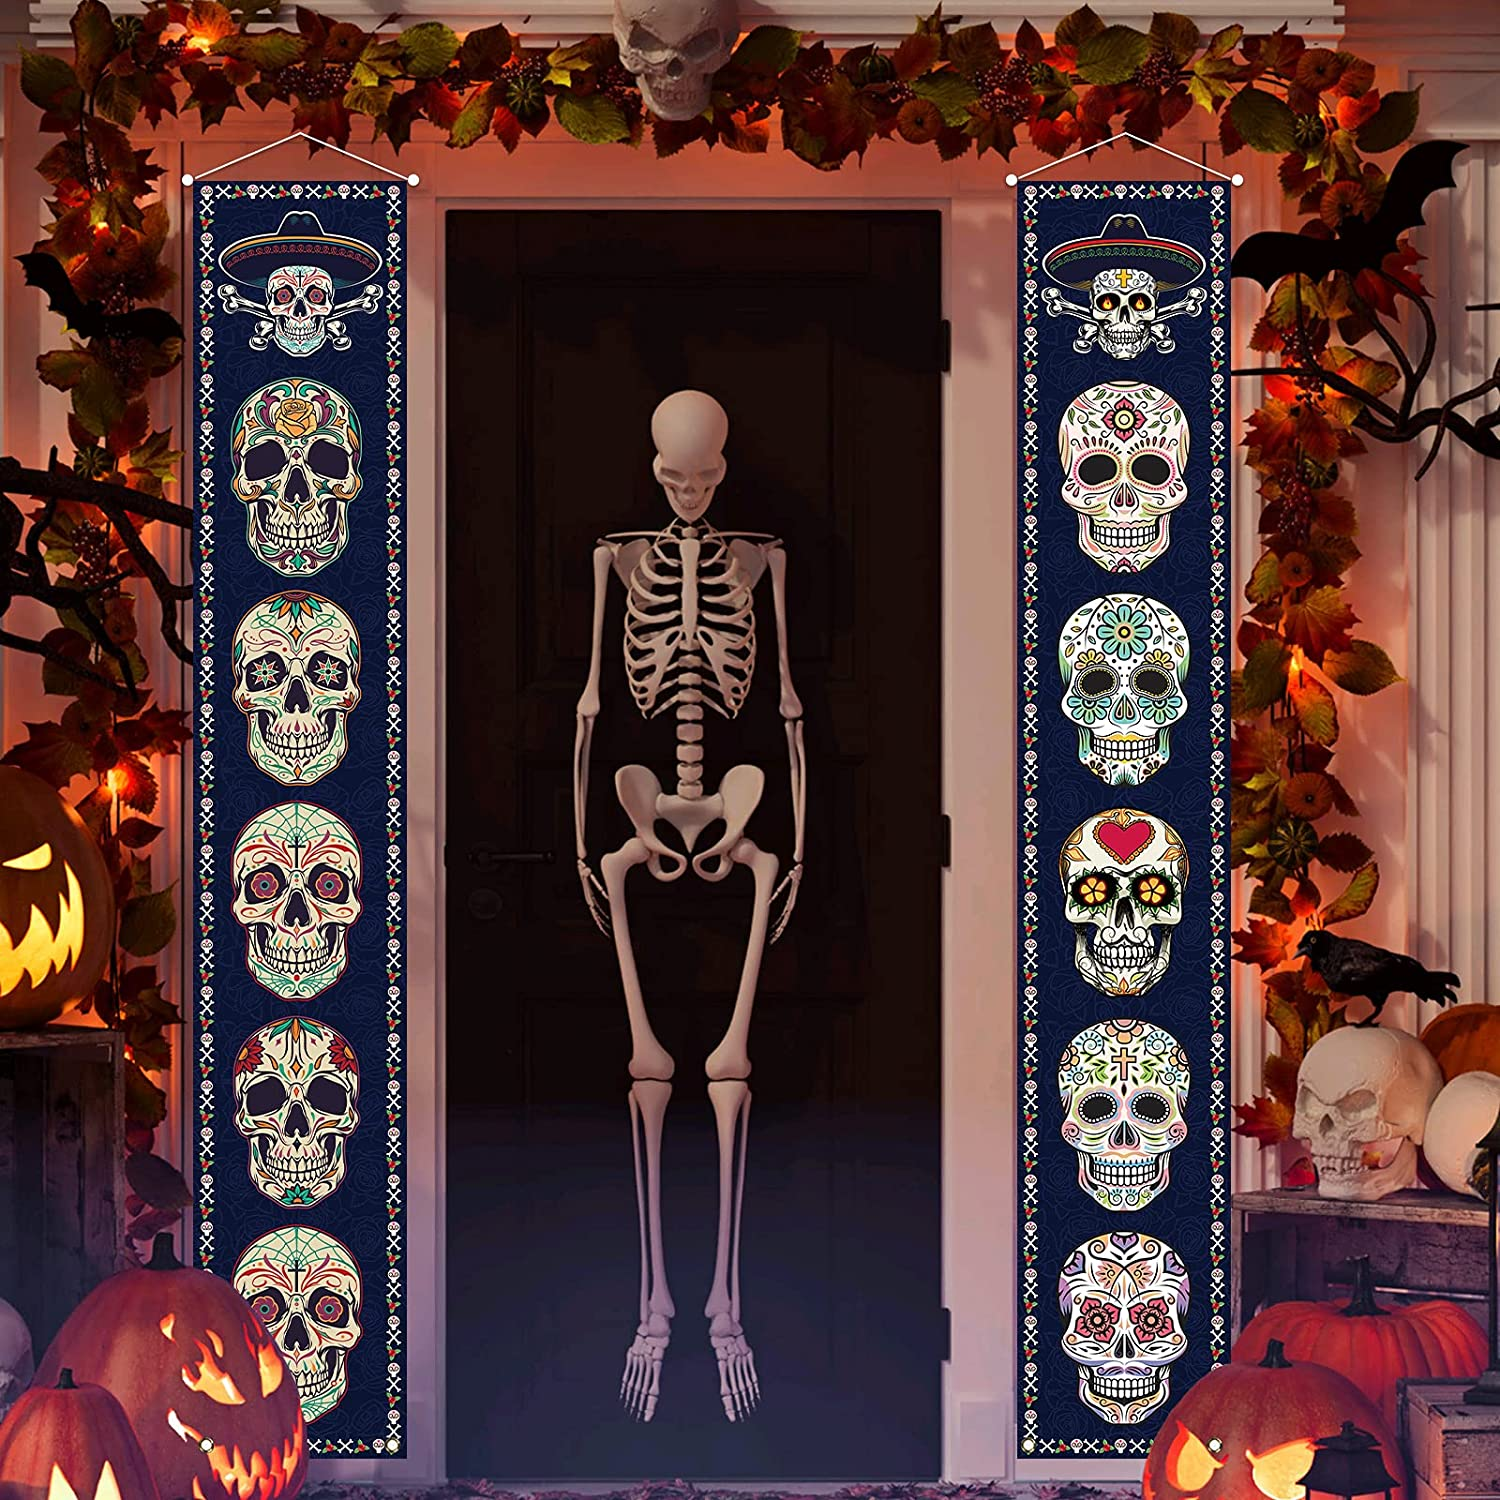 Jiudungs Day of The Dead Decoration Outdoor Dia De Los Muertos Sugar Skull Porch Sign Banner Halloween Mexican Theme Party Decor and Supplies for Home